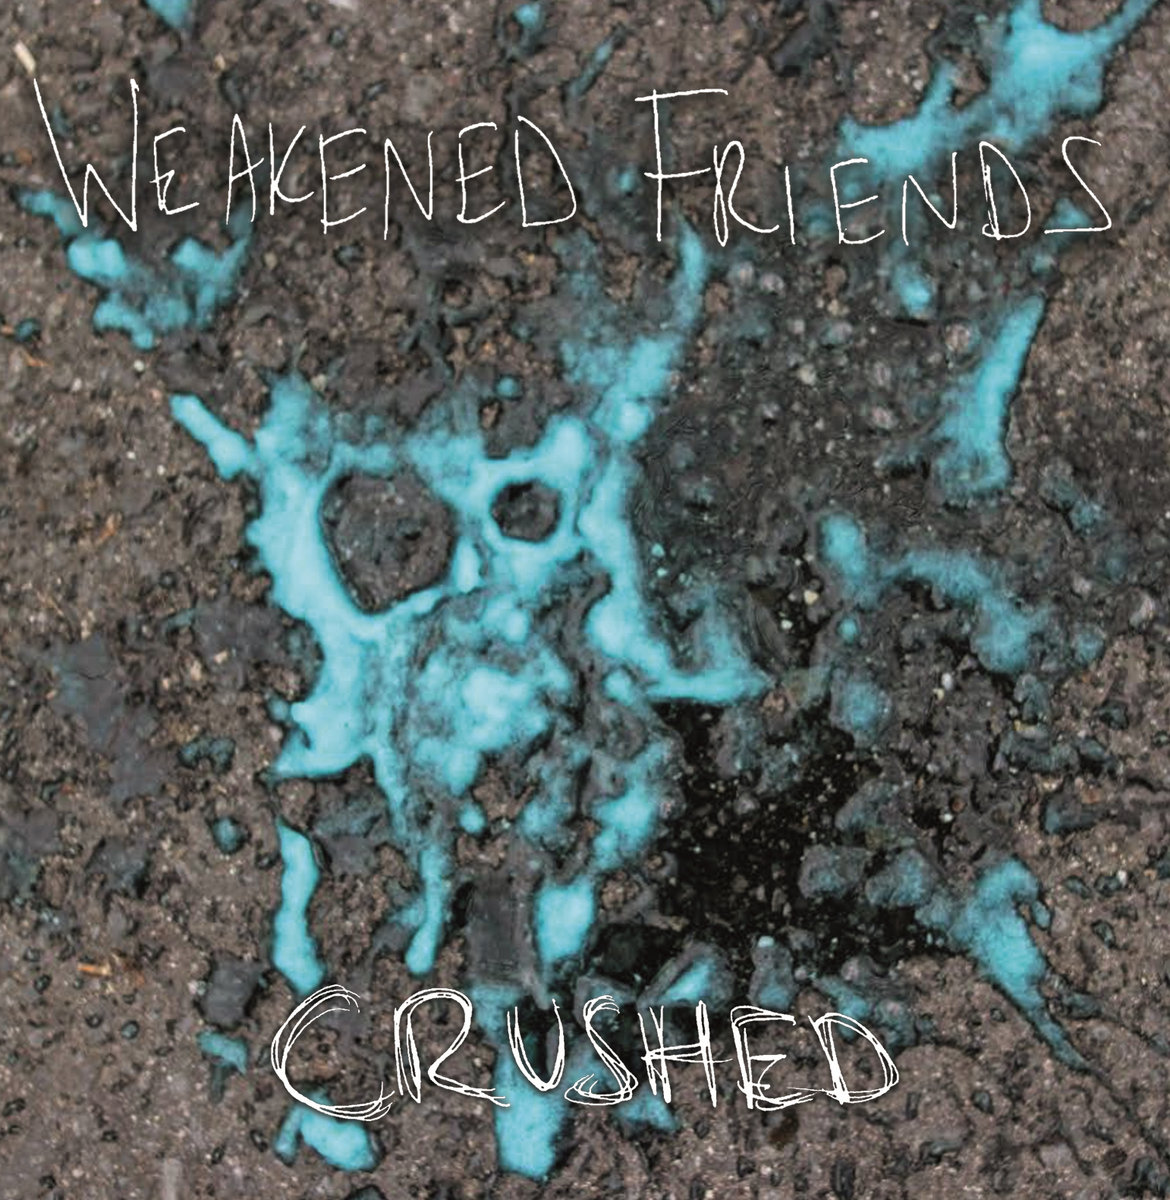 favorite albums of 2016, Crushed by Weakened Friends